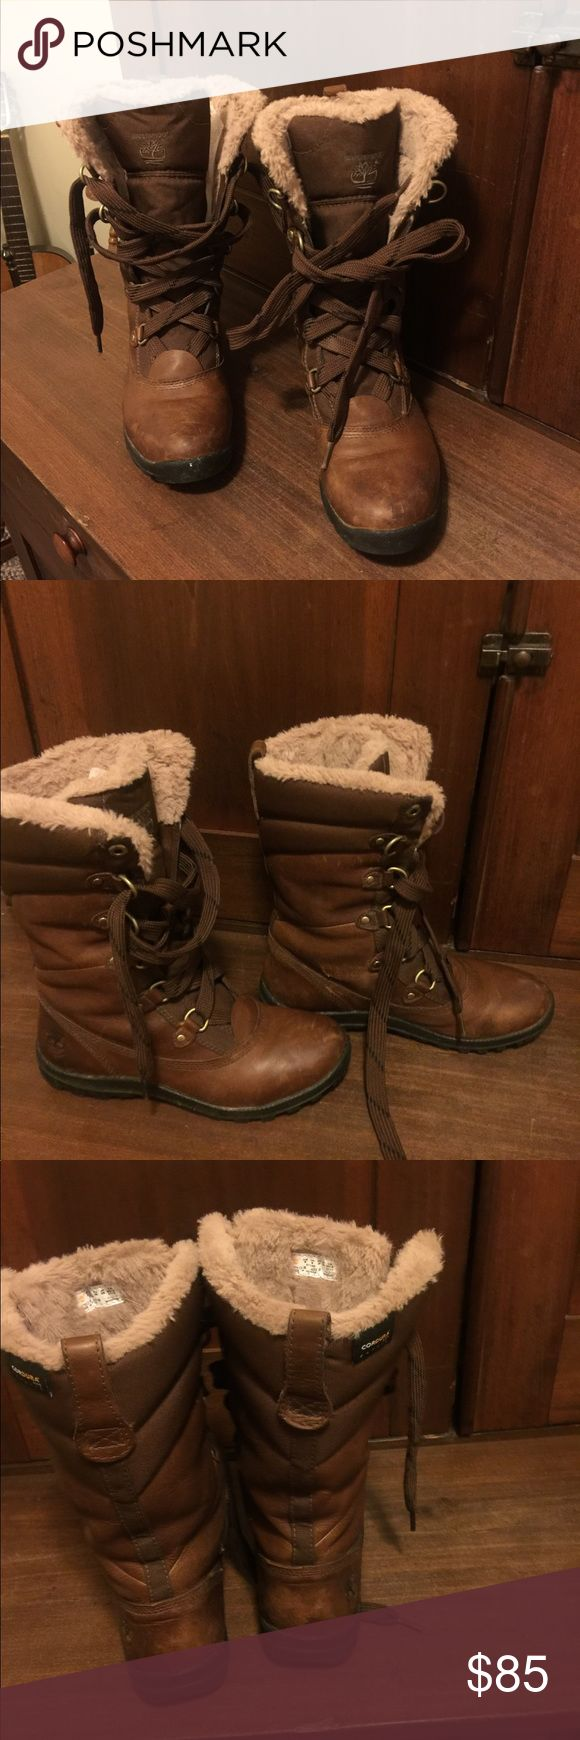 Ladies leather fur lined Timberland boots Good used condition women's Timberland EarthKeepers distressed leather .Green index rated and 100% waterproof rated.Very nice  warm and comfortable walking boots.Size 8.Price marked for small flaw scuff see picture. Timberland Shoes Winter & Rain Boots